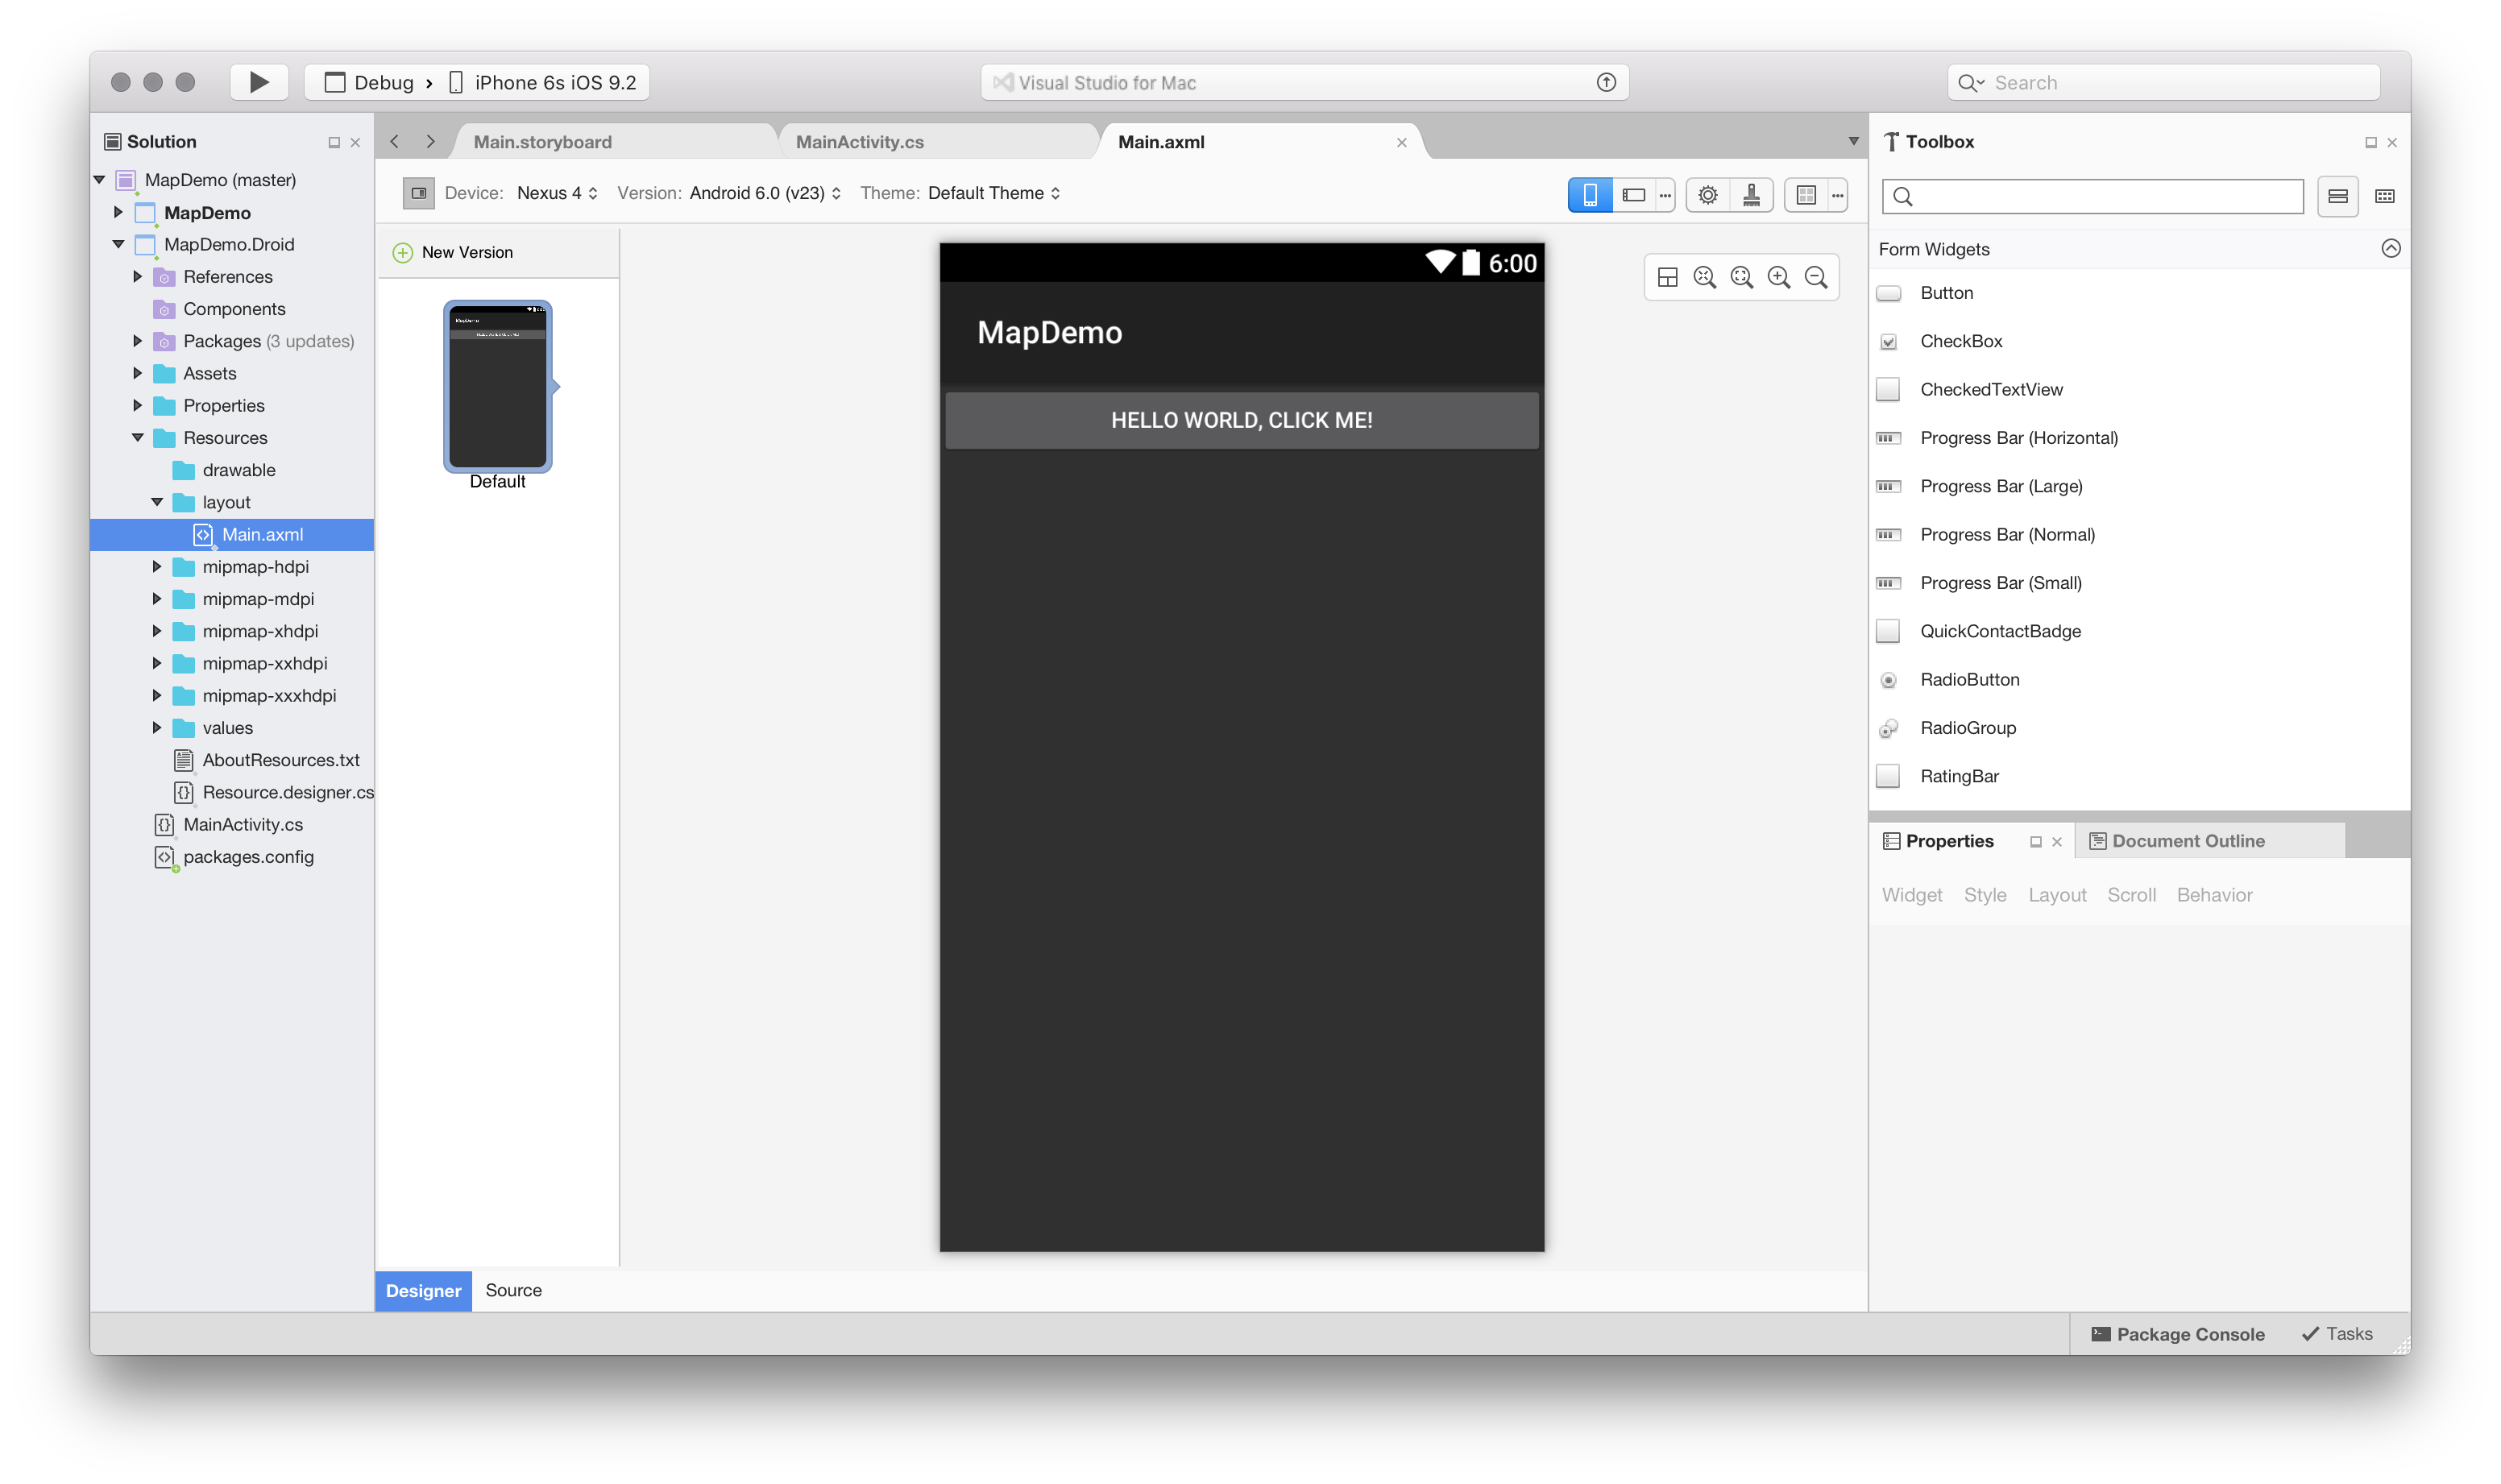 Android Studio Design Surface